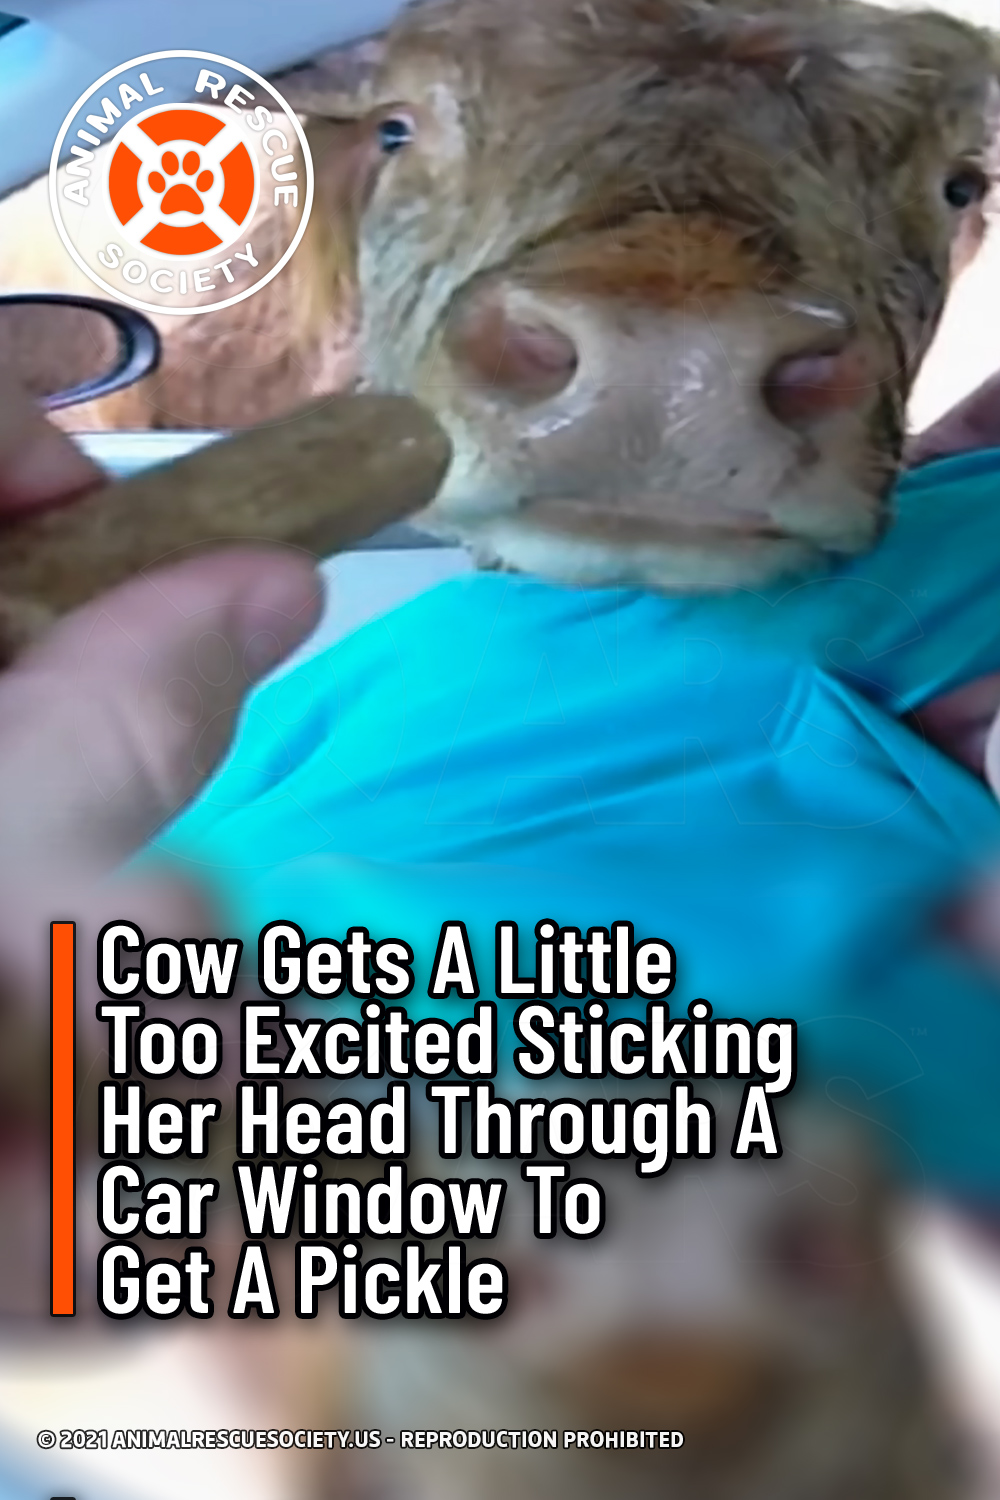 Cow Gets A Little Too Excited Sticking Her Head Through A Car Window To Get A Pickle